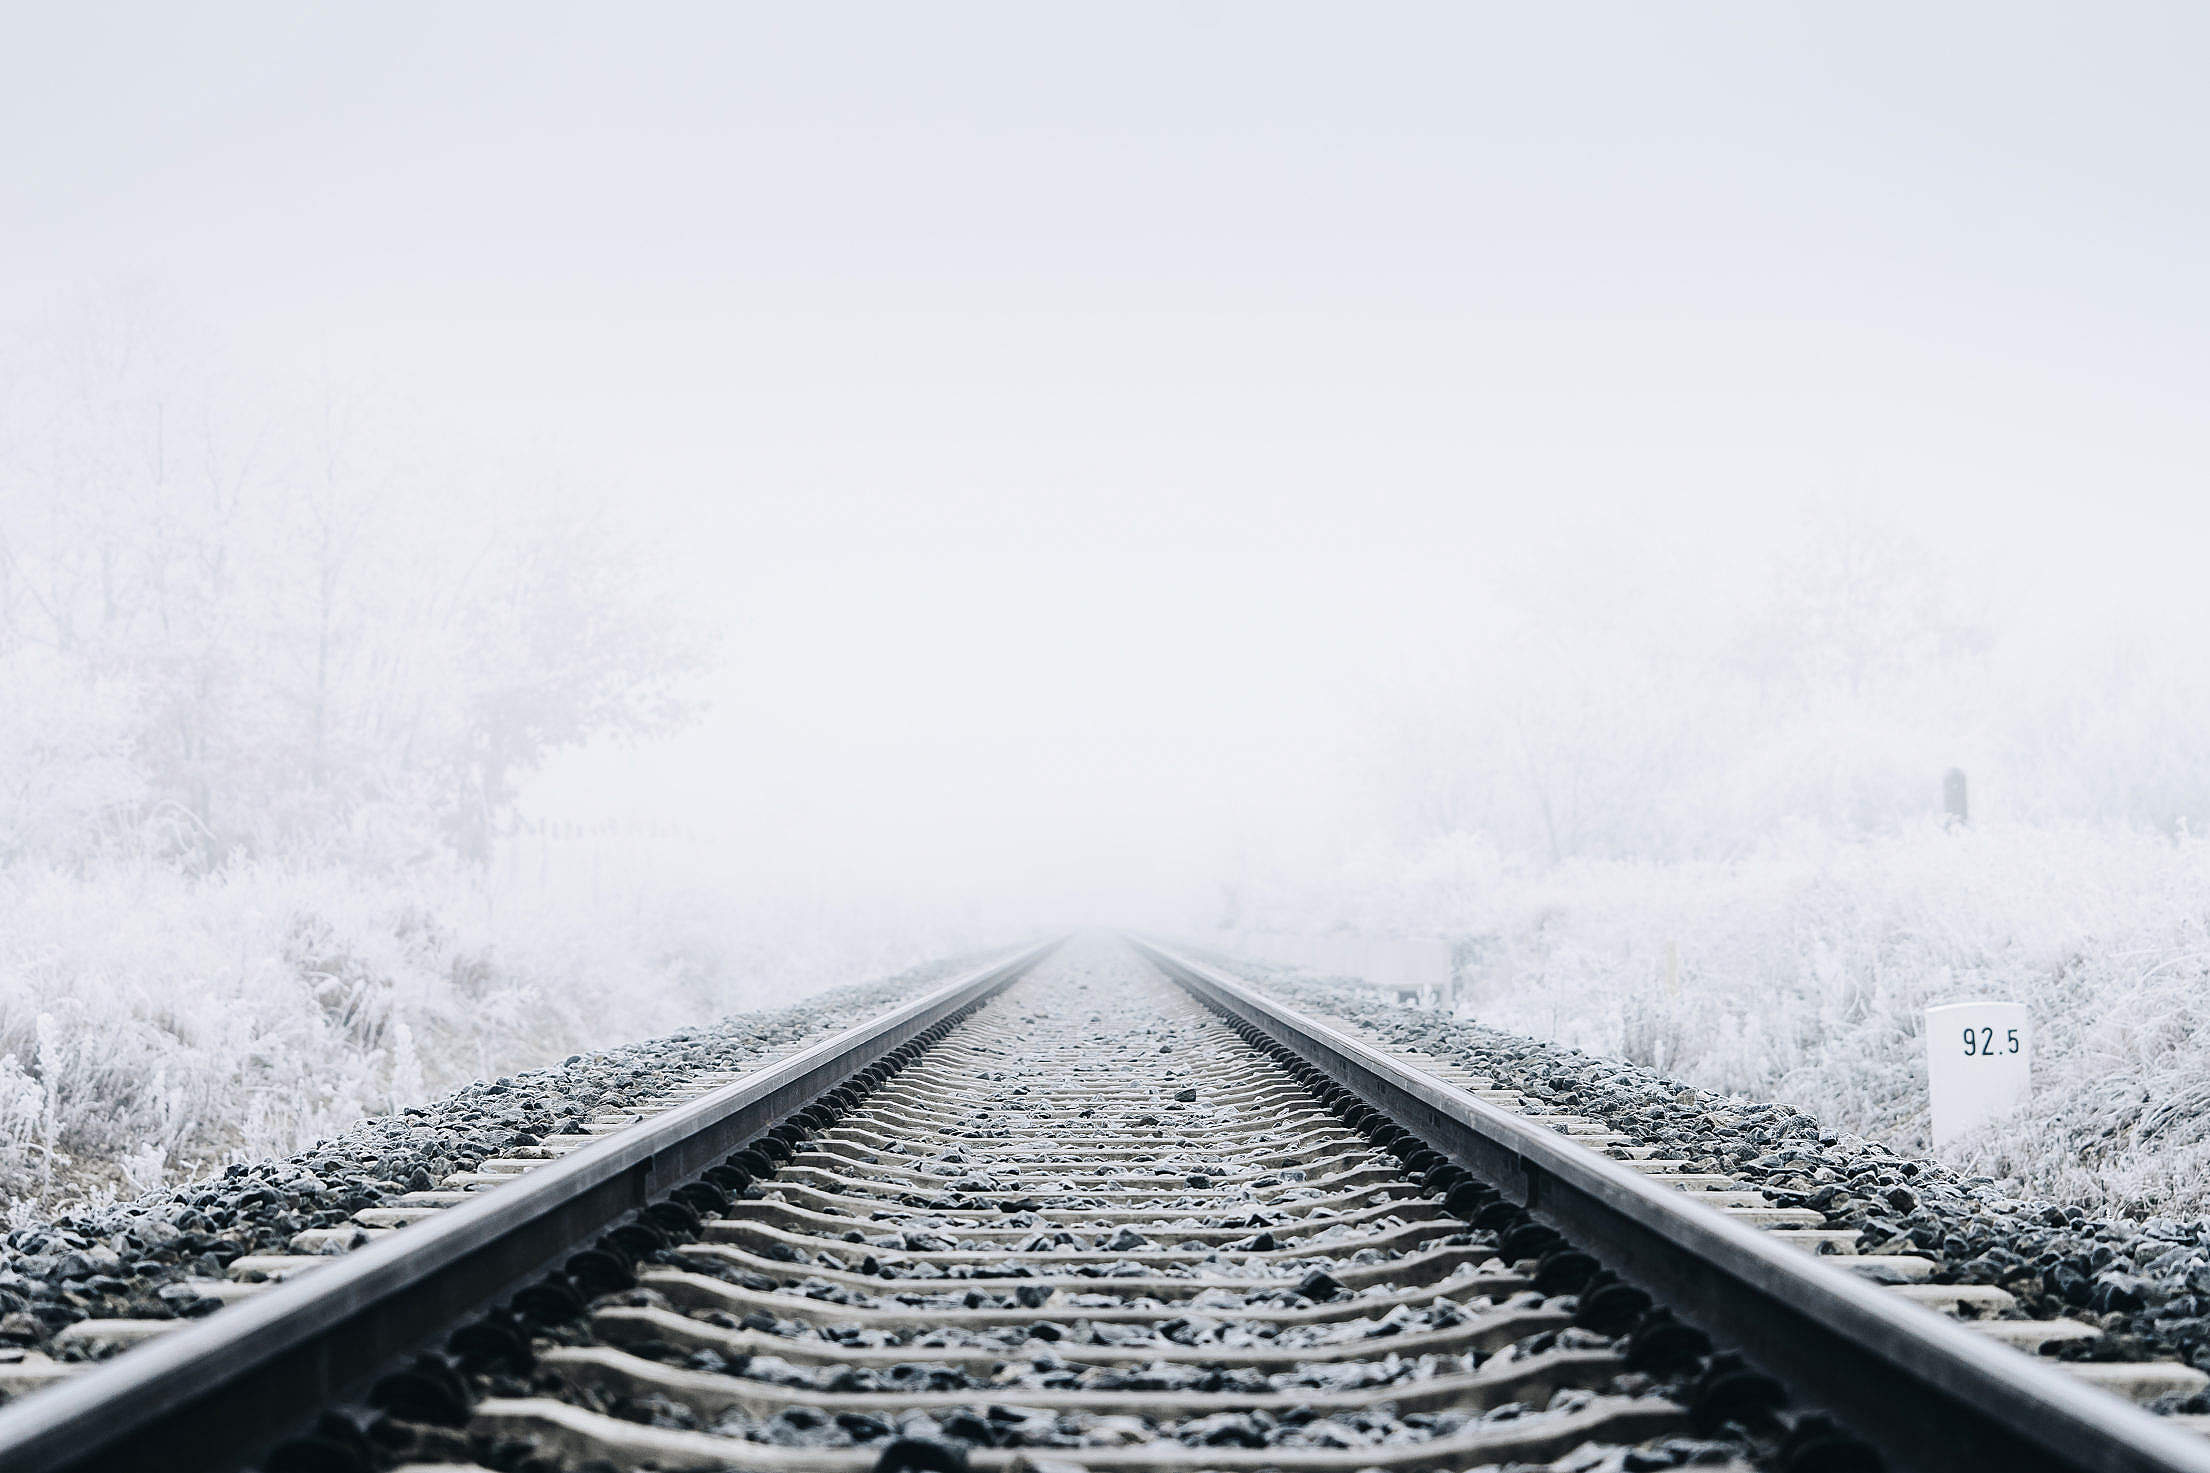 Railway Tracks in Winter Free Stock Photo